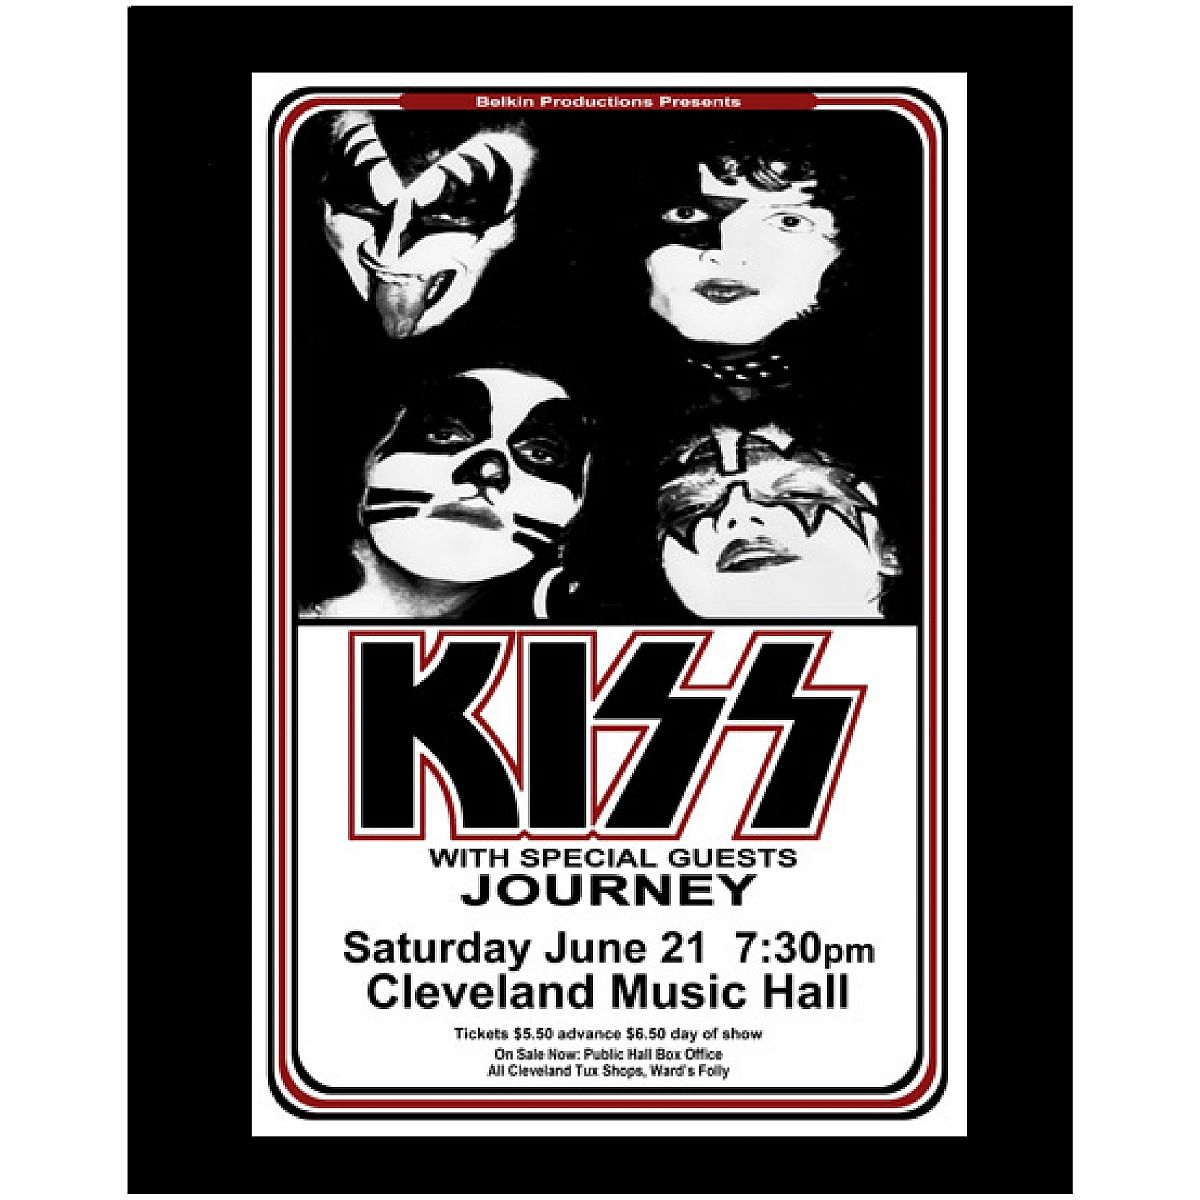 KISS & JOURNEY 1975 CLEVELAND MUSIC HALL POSTER